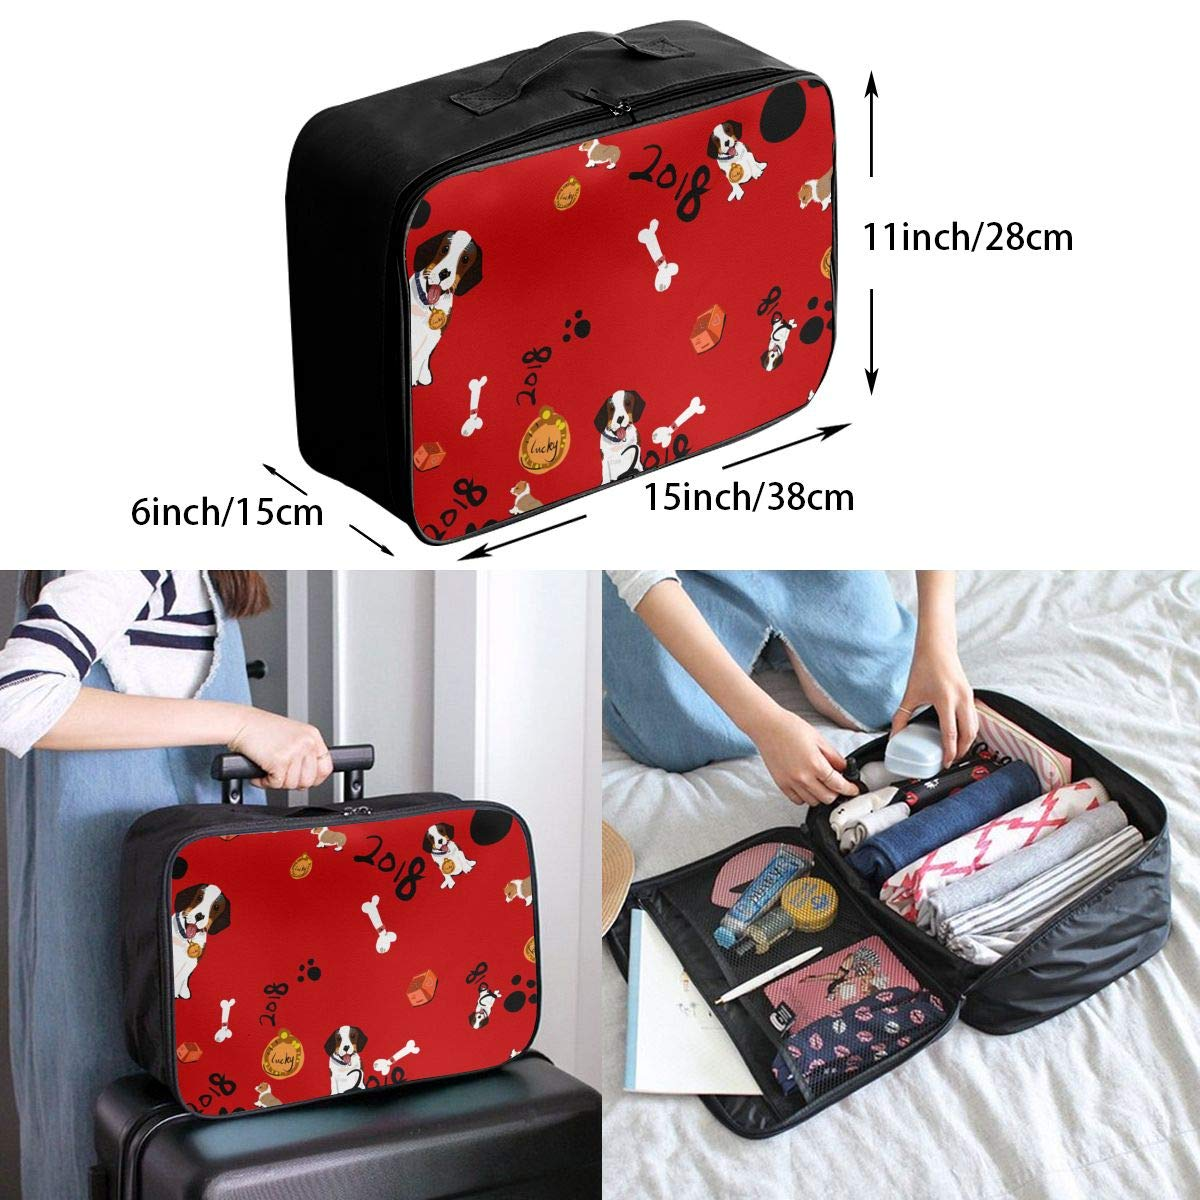 Travel Luggage Duffle Bag Lightweight Portable Handbag Dog Print Large Capacity Waterproof Foldable Storage Tote